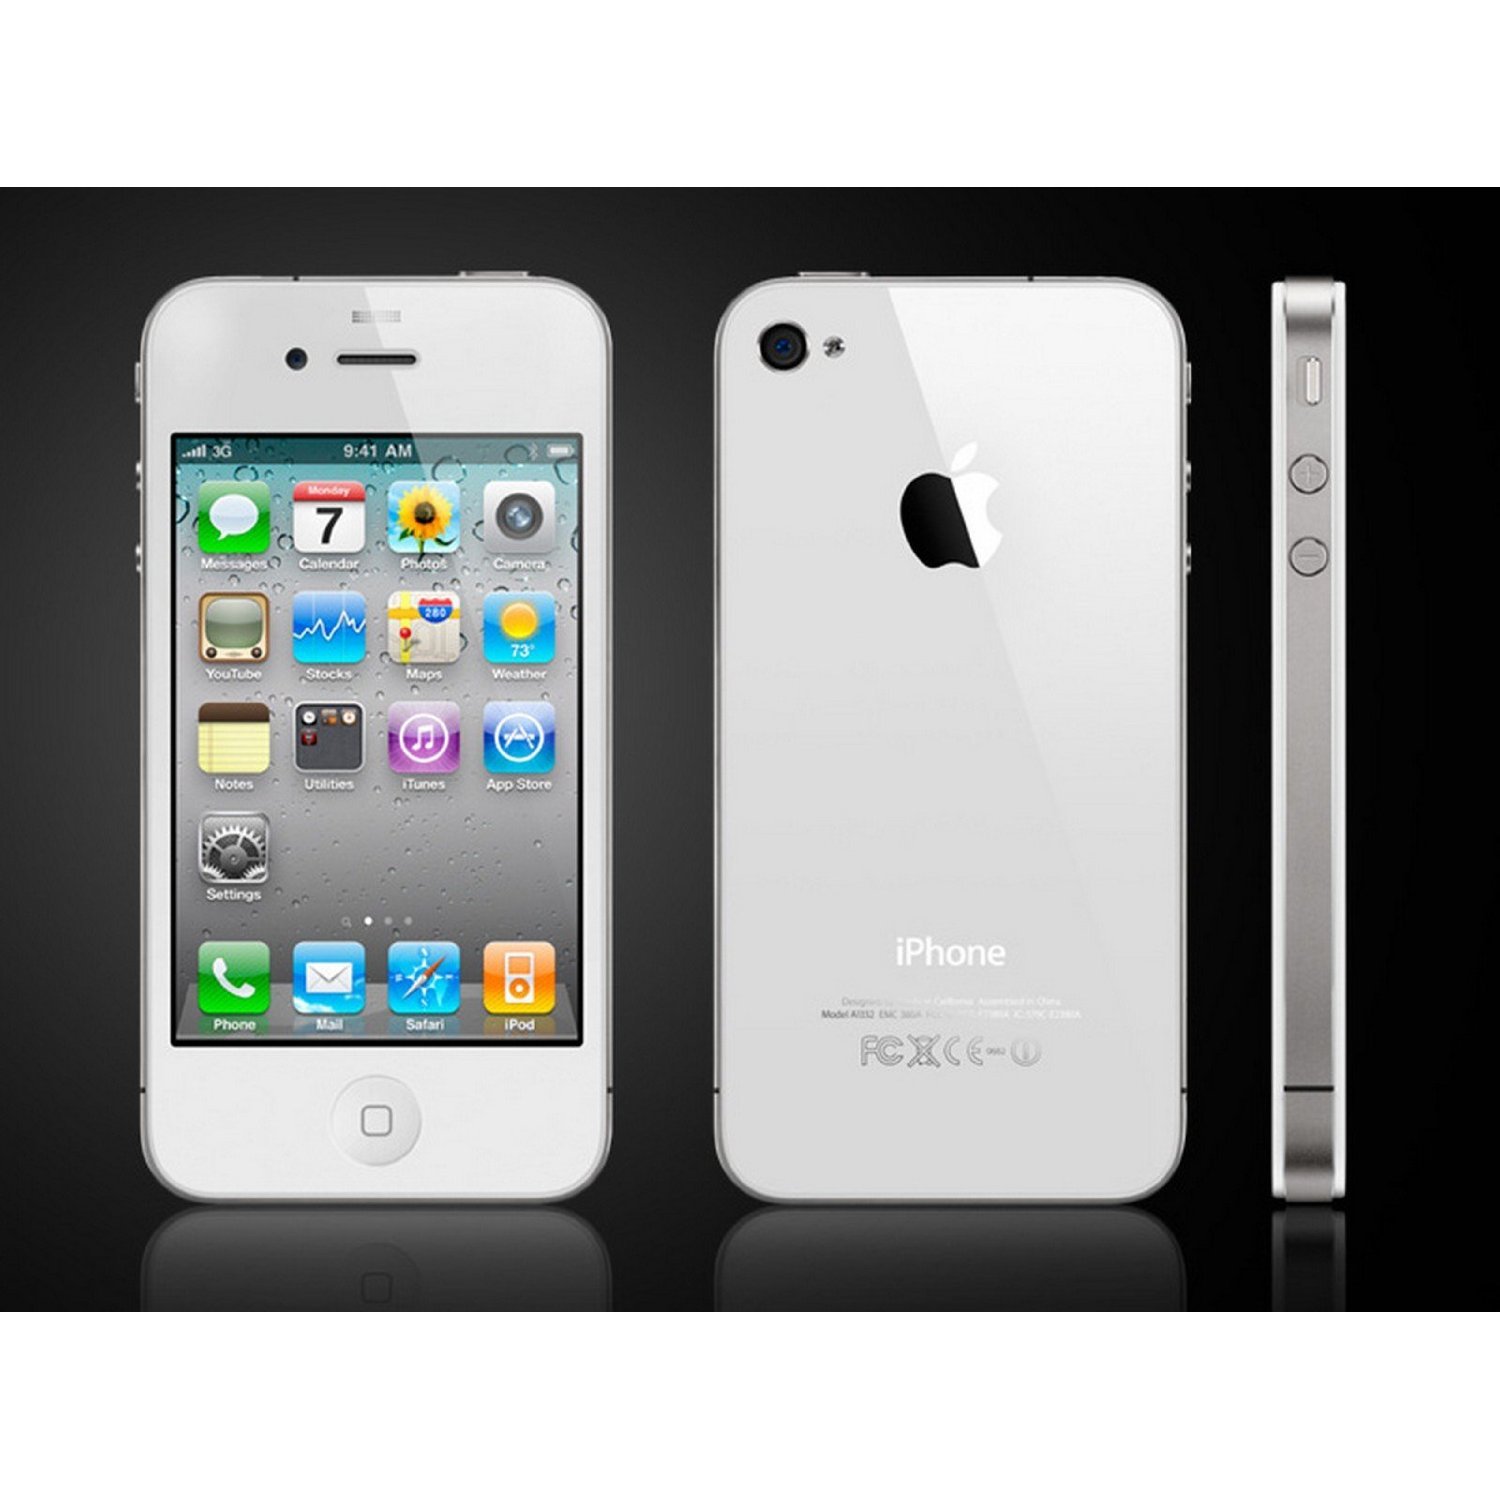 brand new iphone 4s white 16 gb boxed factory unlocked. Black Bedroom Furniture Sets. Home Design Ideas